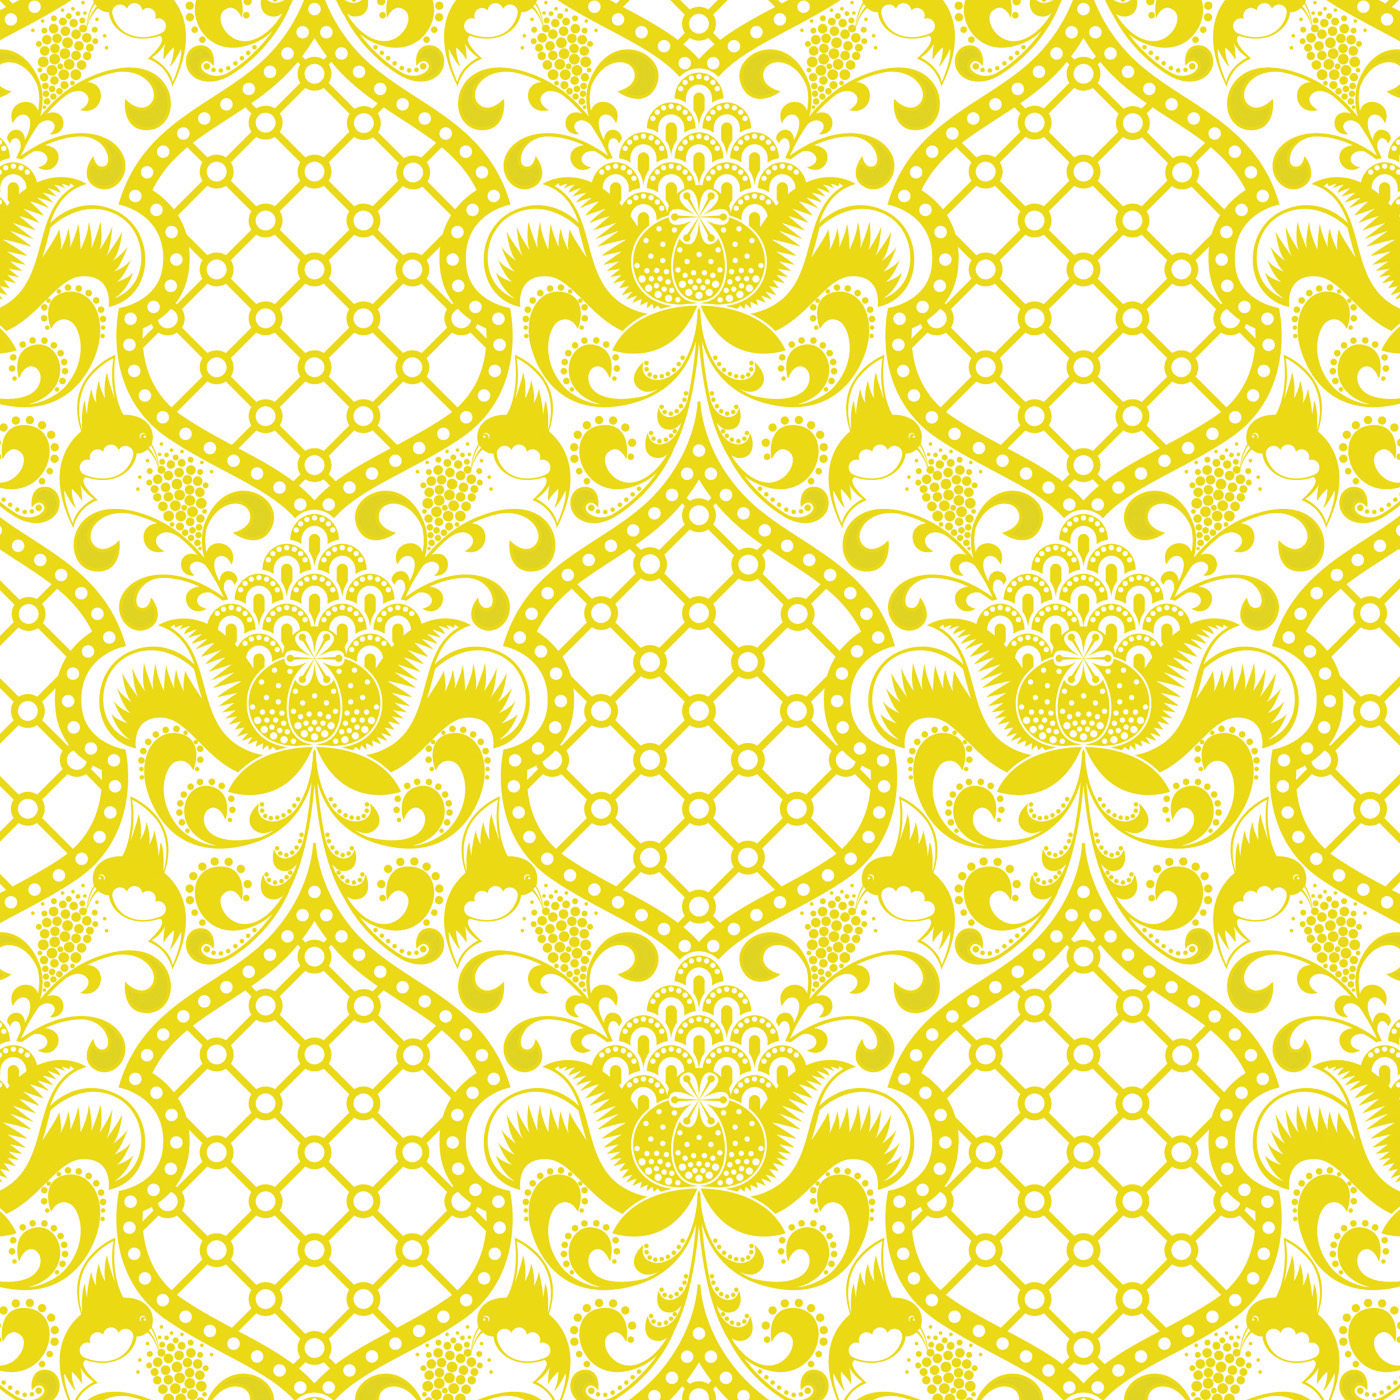 Jonathan Adler Wallpaper Brocade Yellow   Shabby Chic Country Home 1400x1400